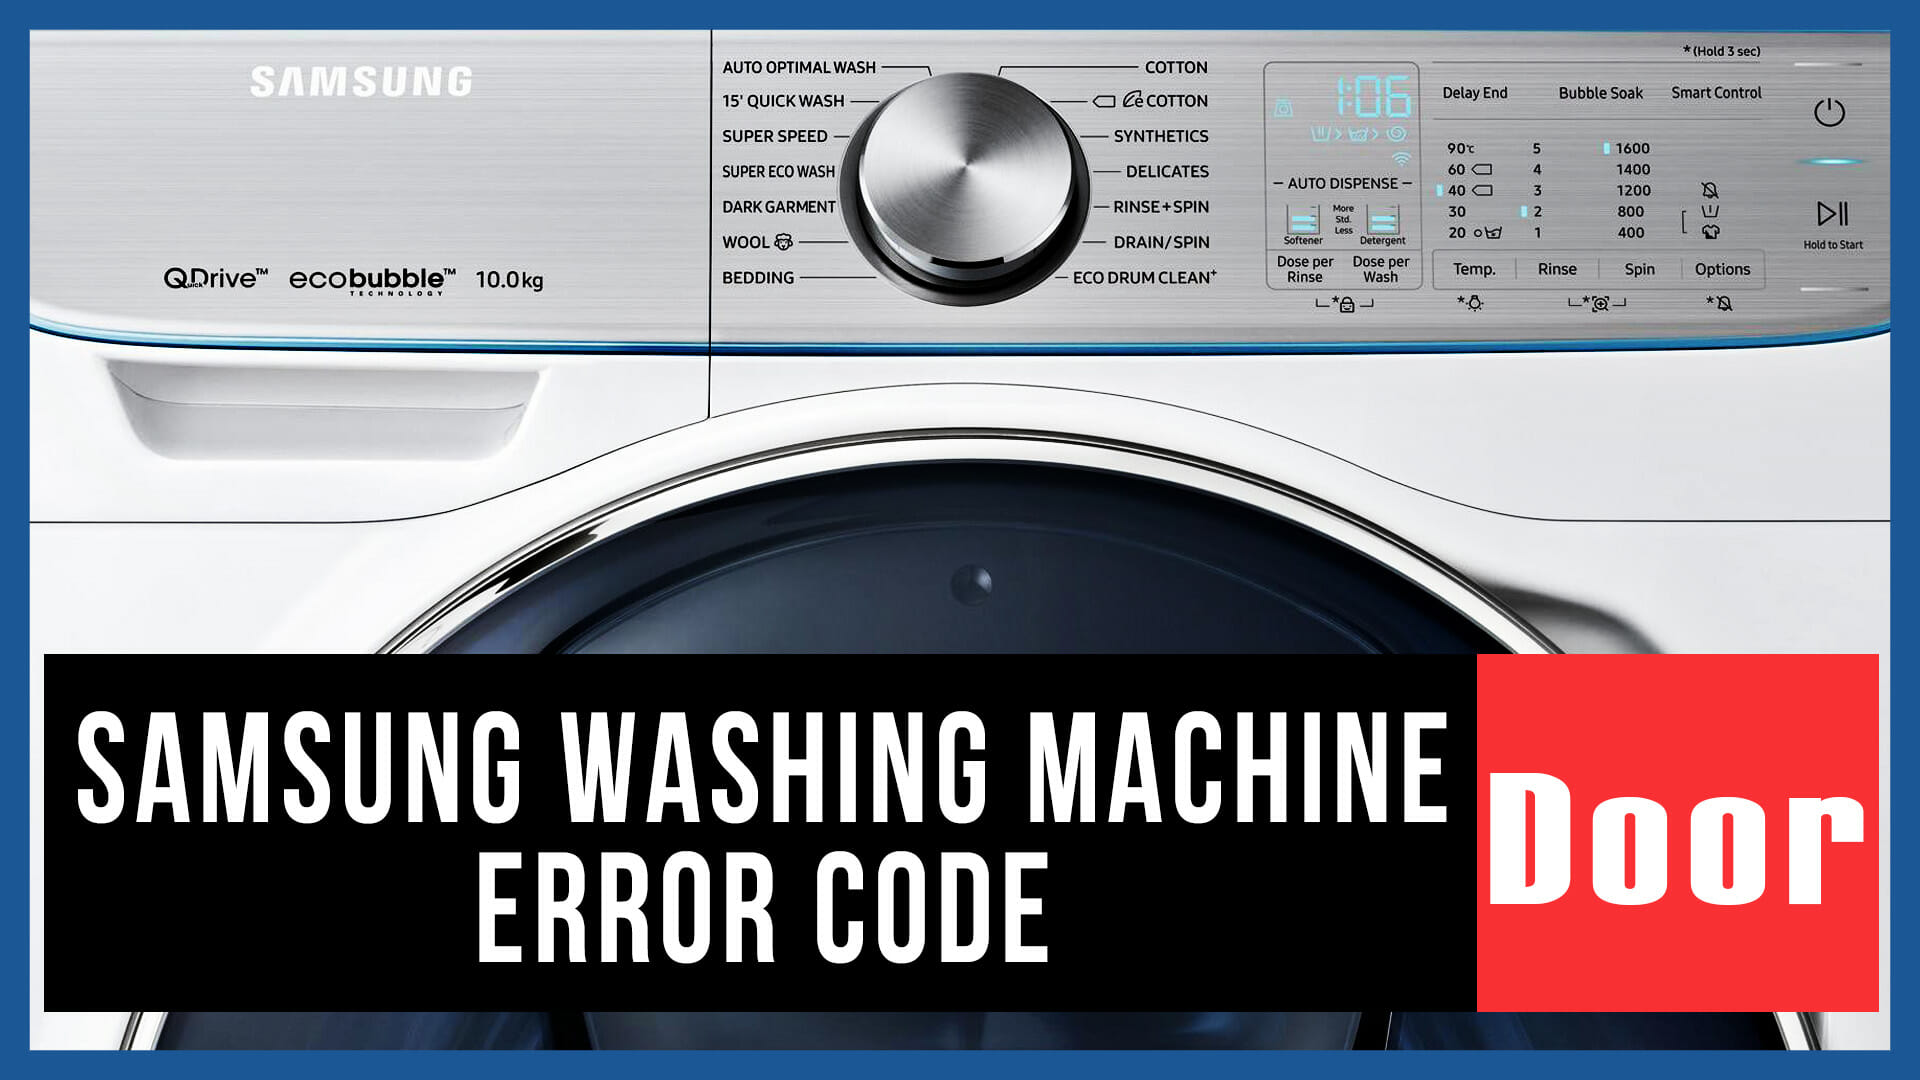 Samsung washing machine error code Door